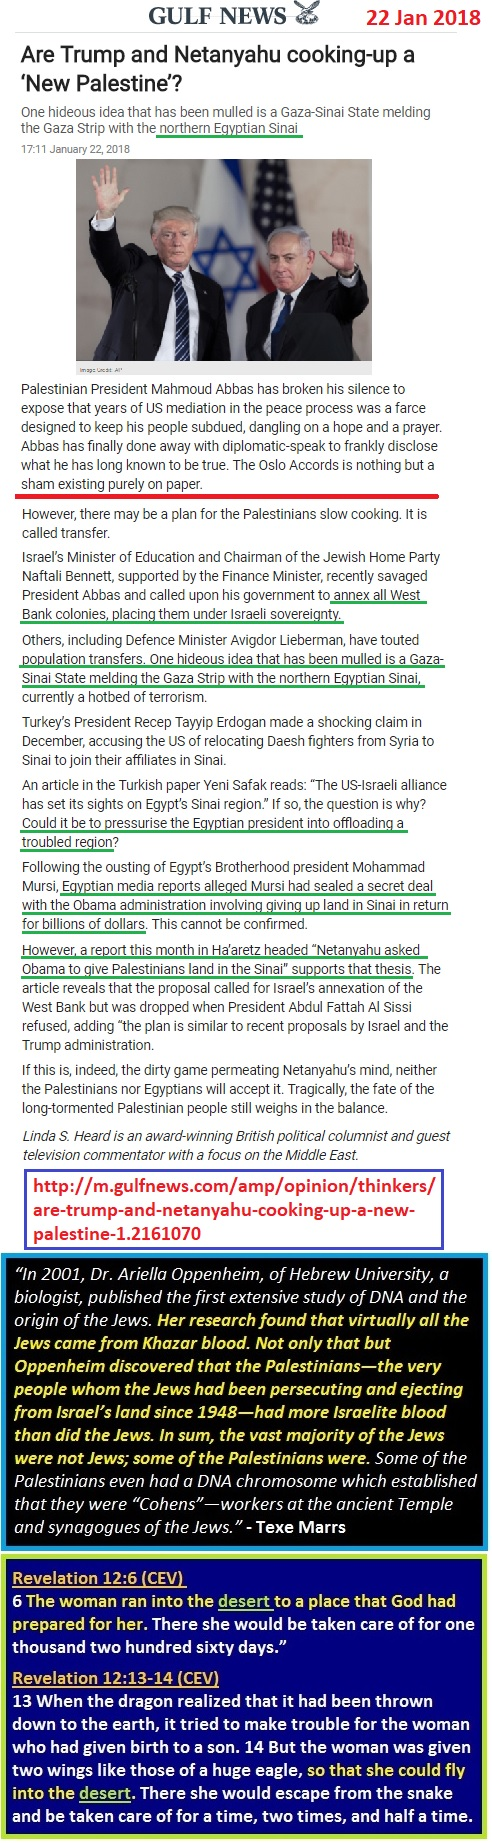 https://gulfnews.com/opinion/op-eds/are-trump-and-netanyahu-cooking-up-a-new-palestine-1.2161070